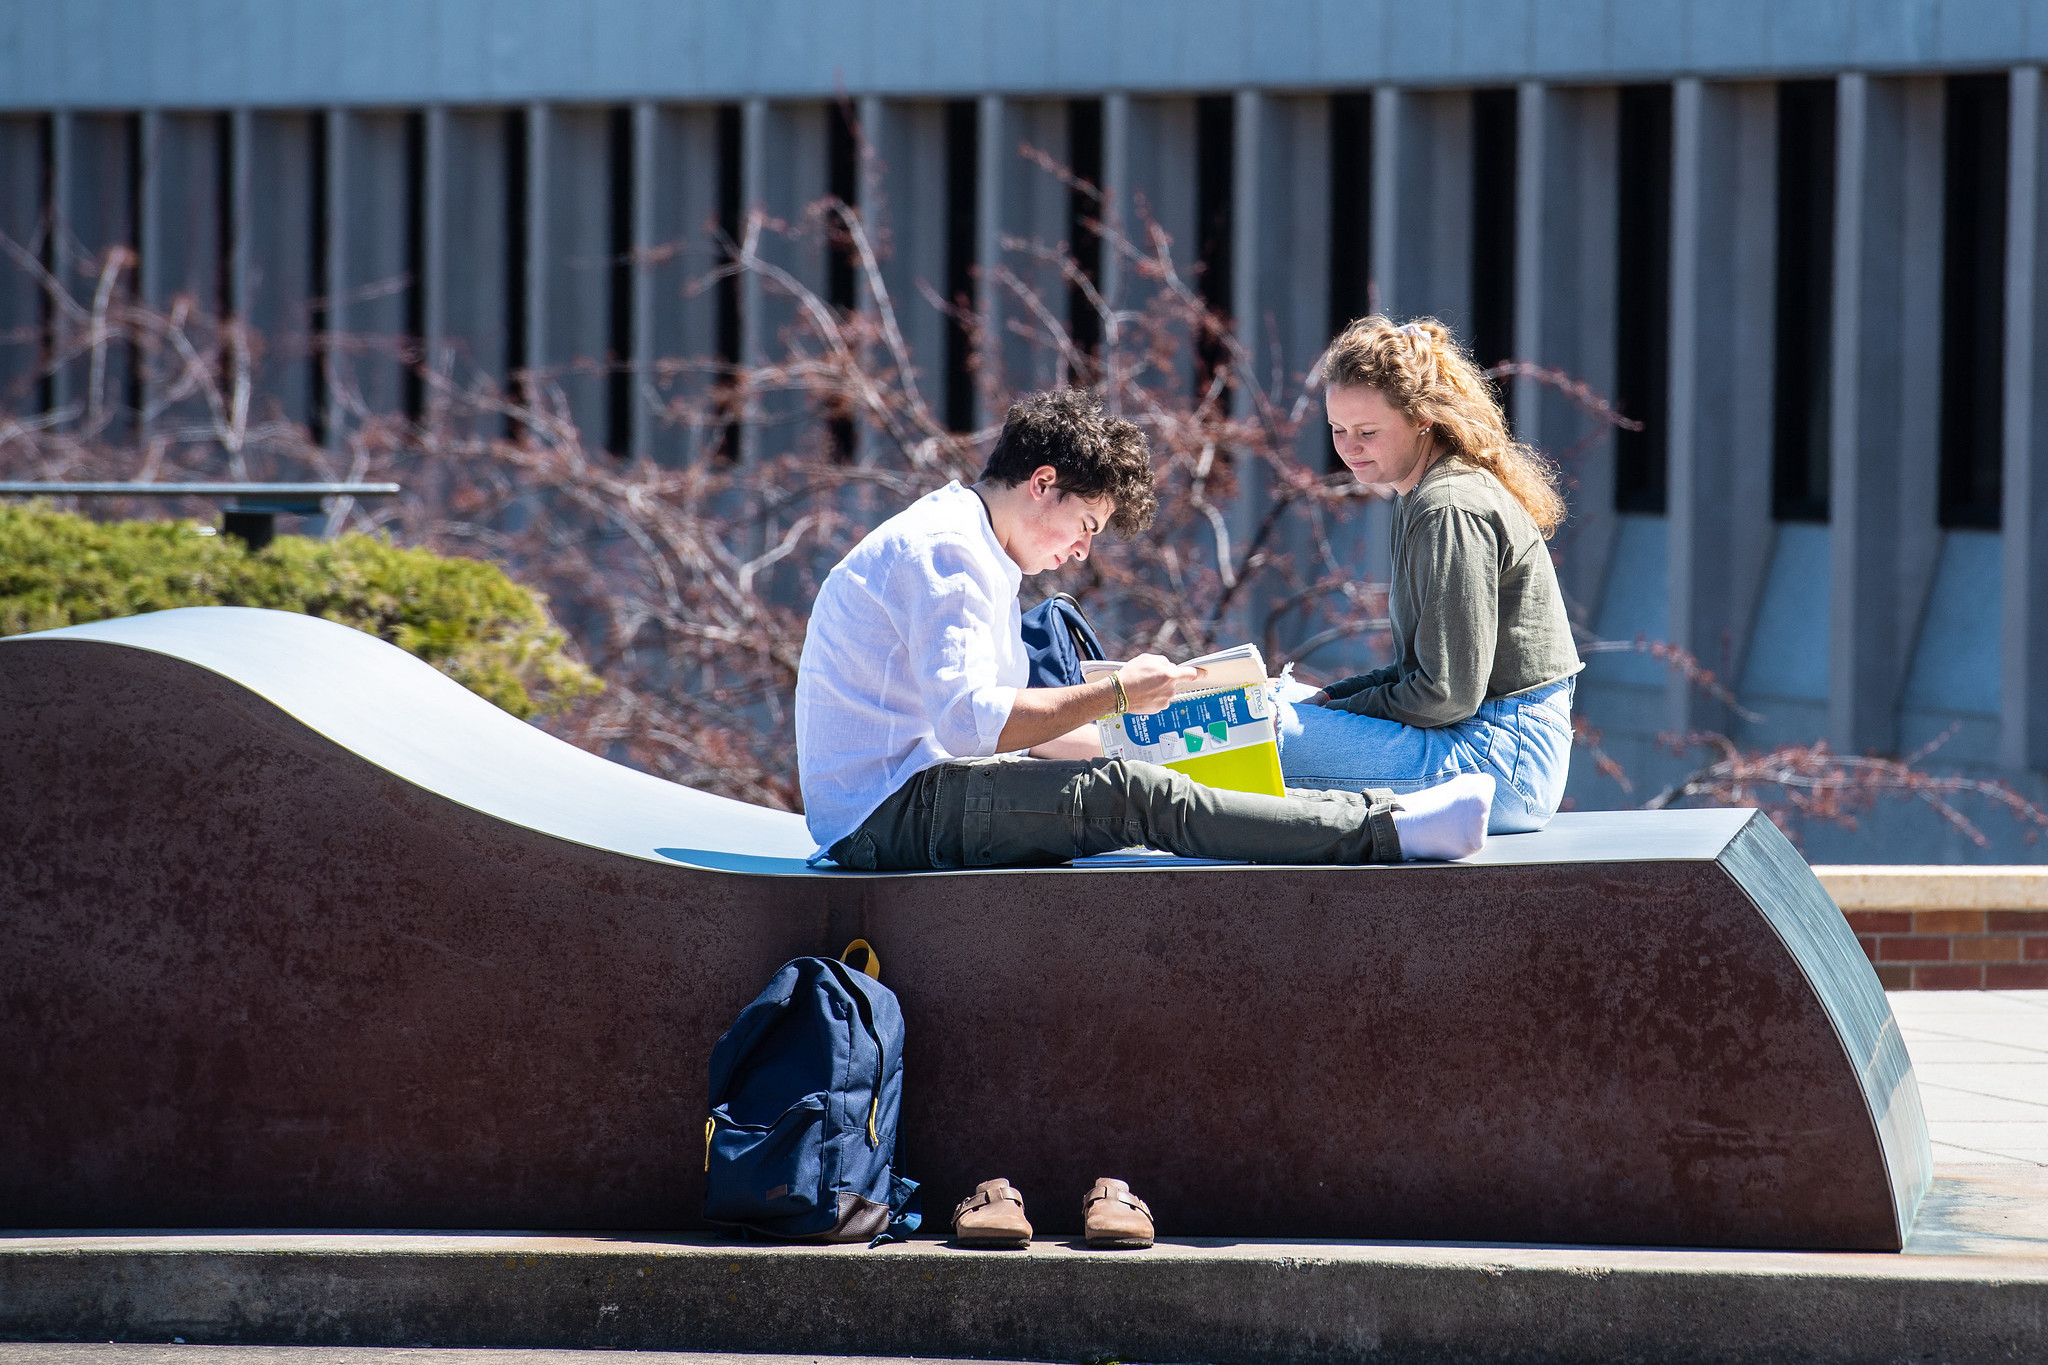 Two students studying while sitting on a flat sculpture